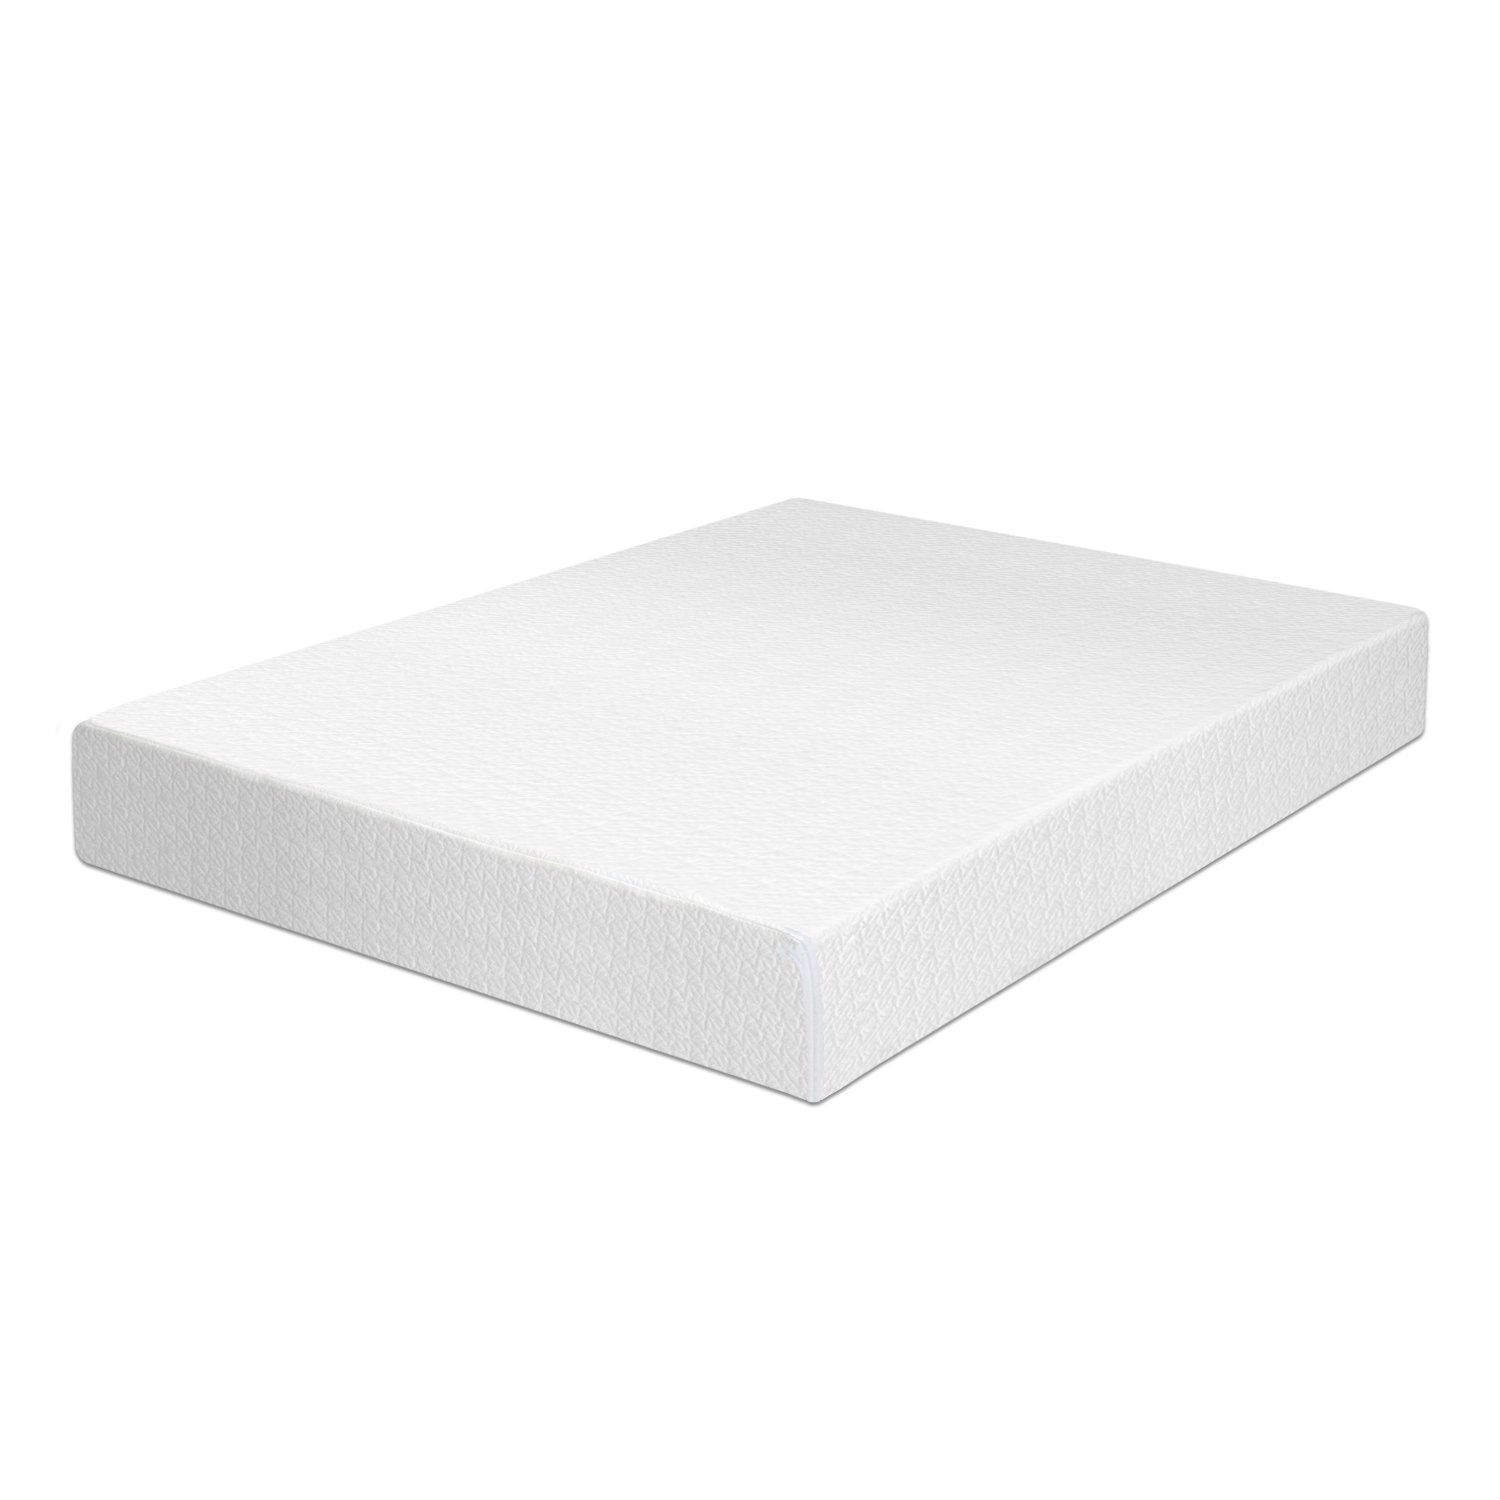 Queen-size 10-inch Thick Pressure Relief Memory Foam Mattress